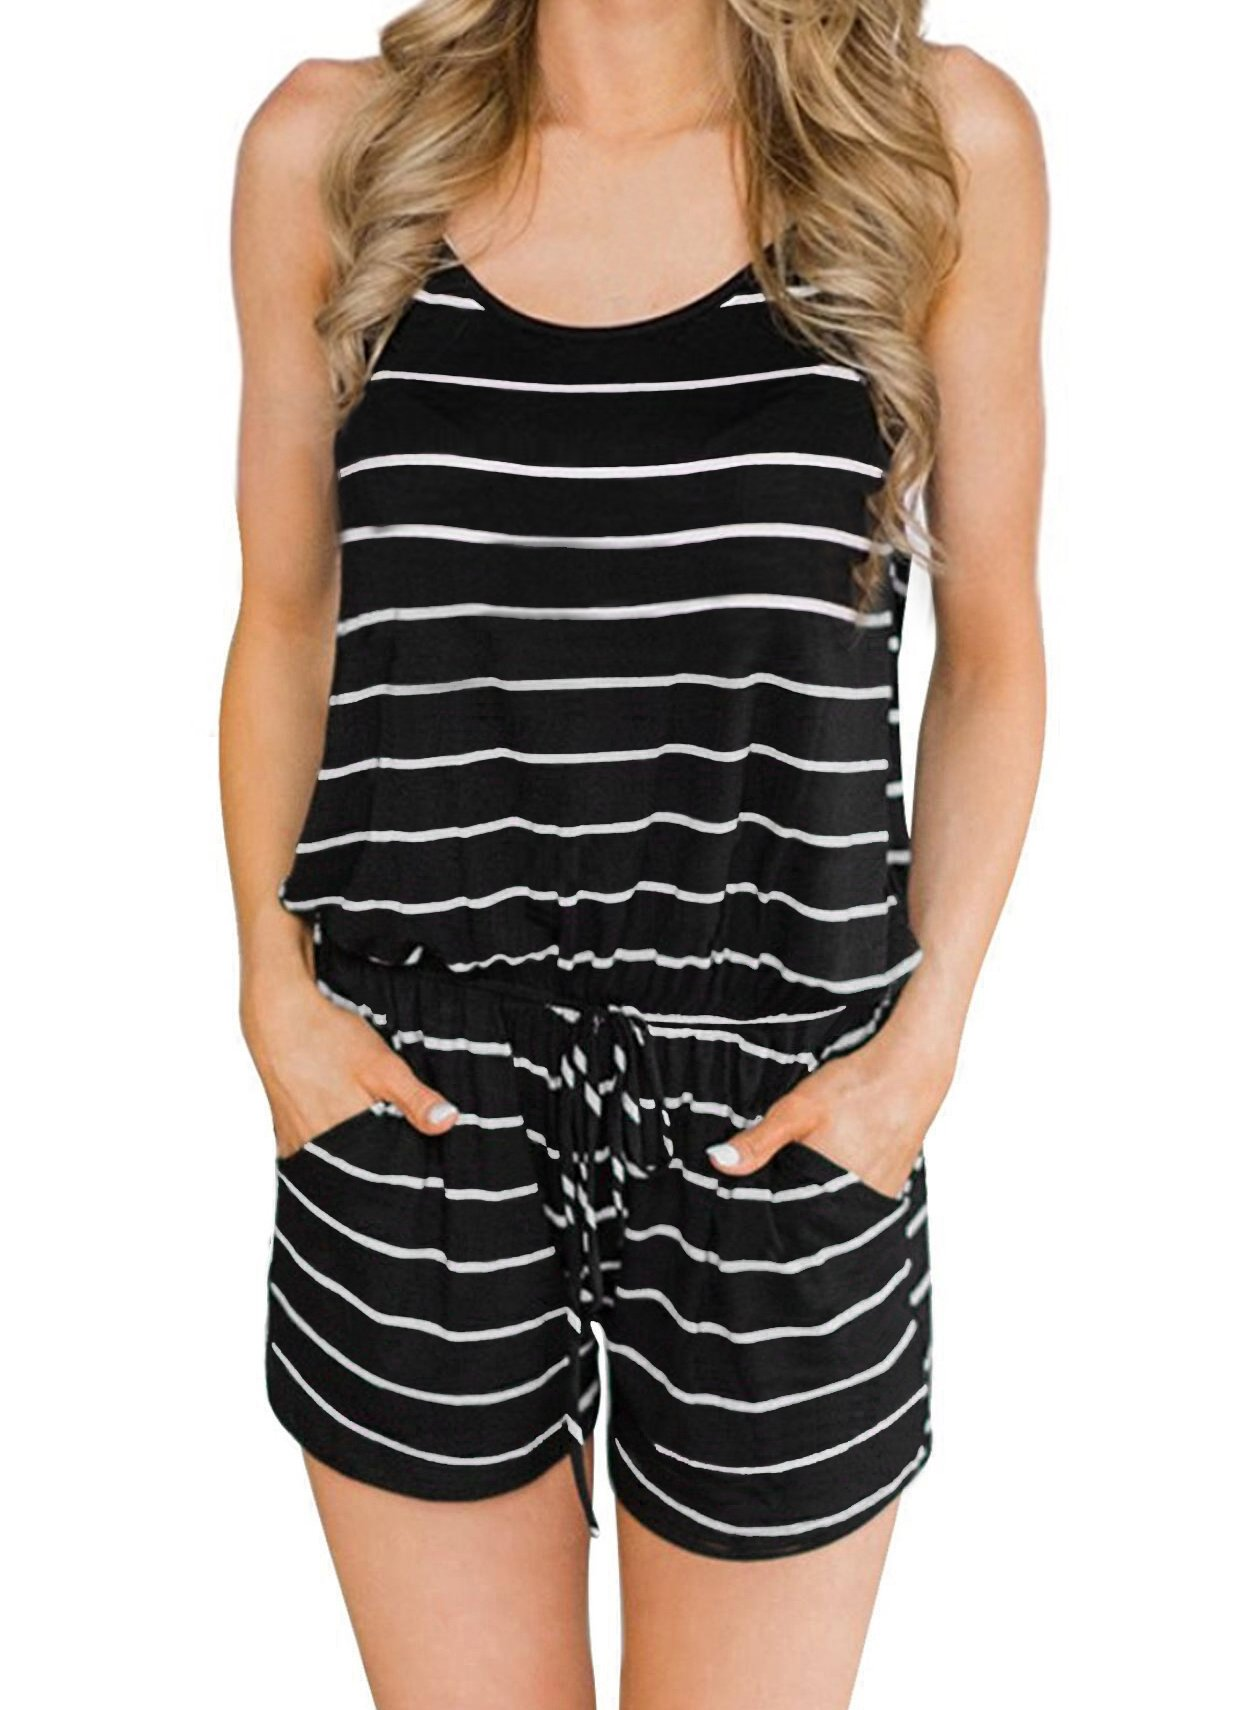 Saifeier Rompers for Women Boat Neck Mid Rise Jumpsuit with Belt(Black,XL)